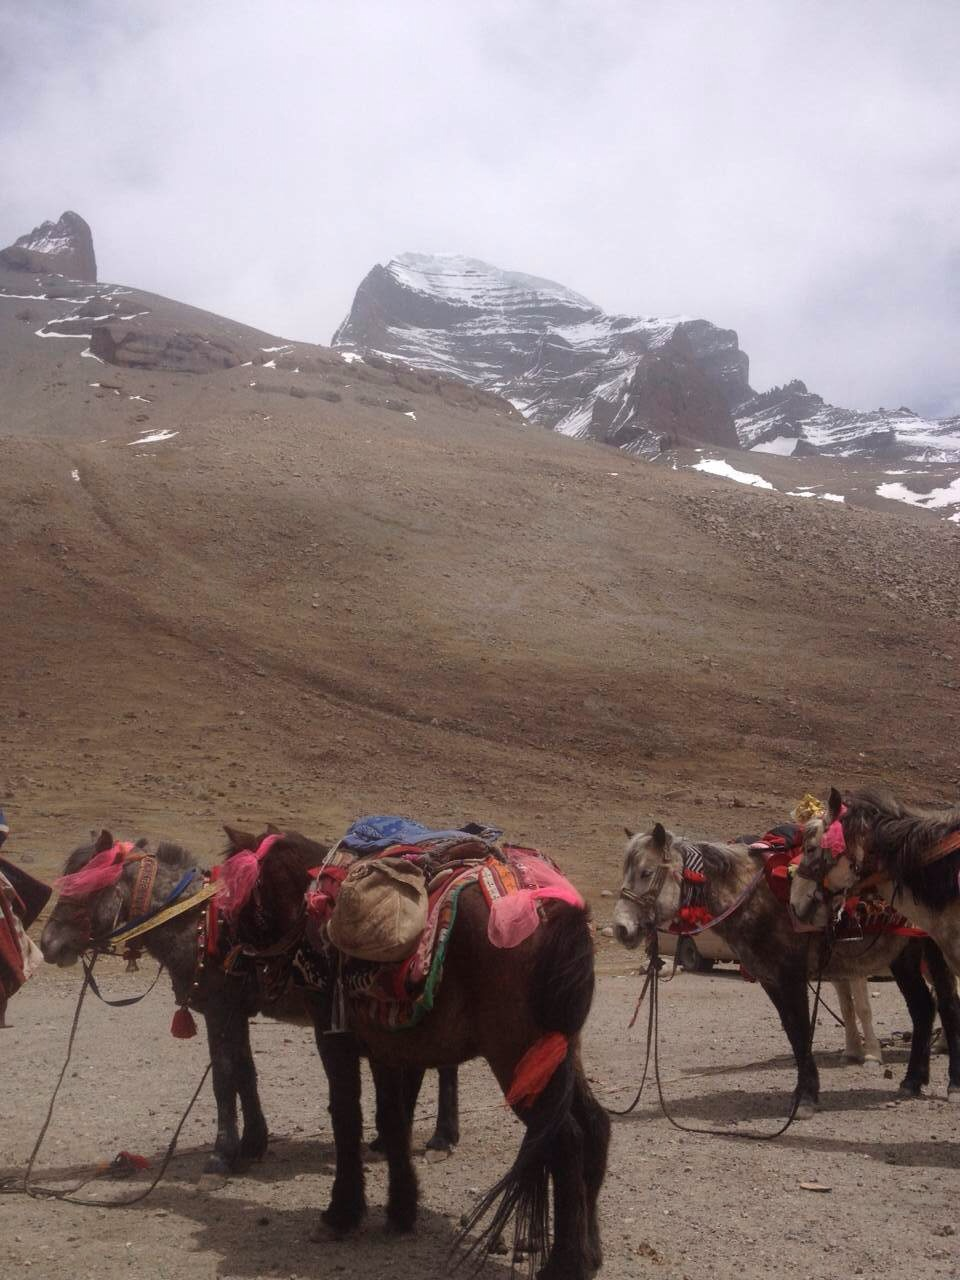 They use some horses to hold their packages because it's really a long way to trek around this holy mountain.